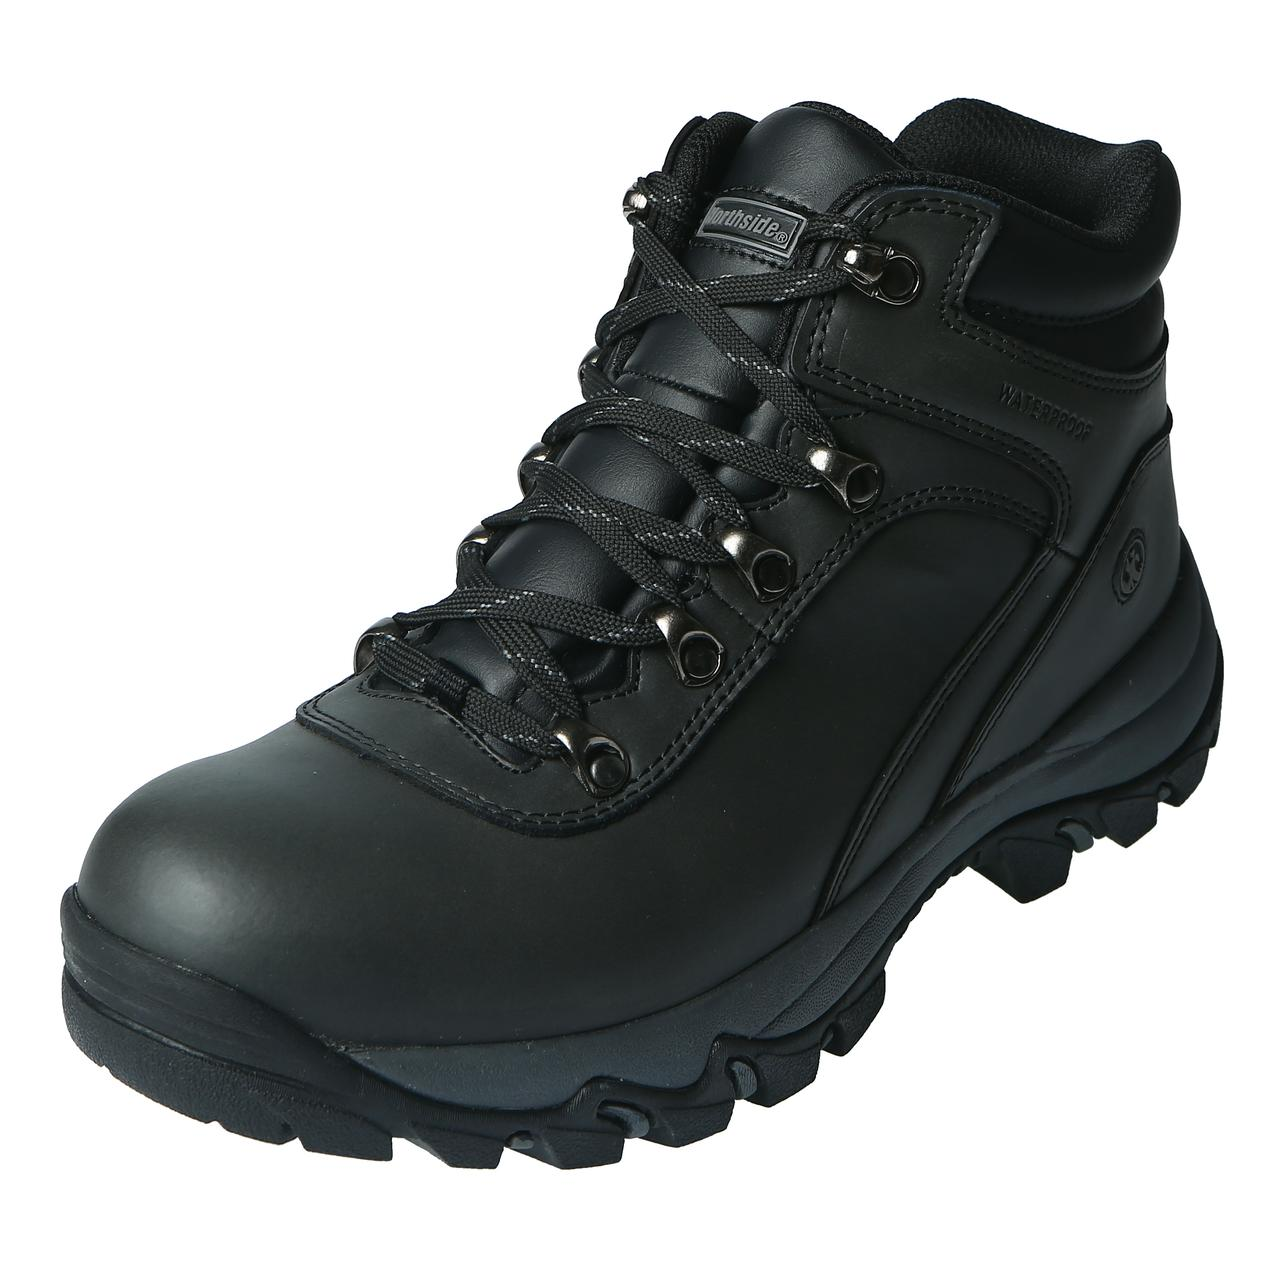 mens leather waterproof hiking boots